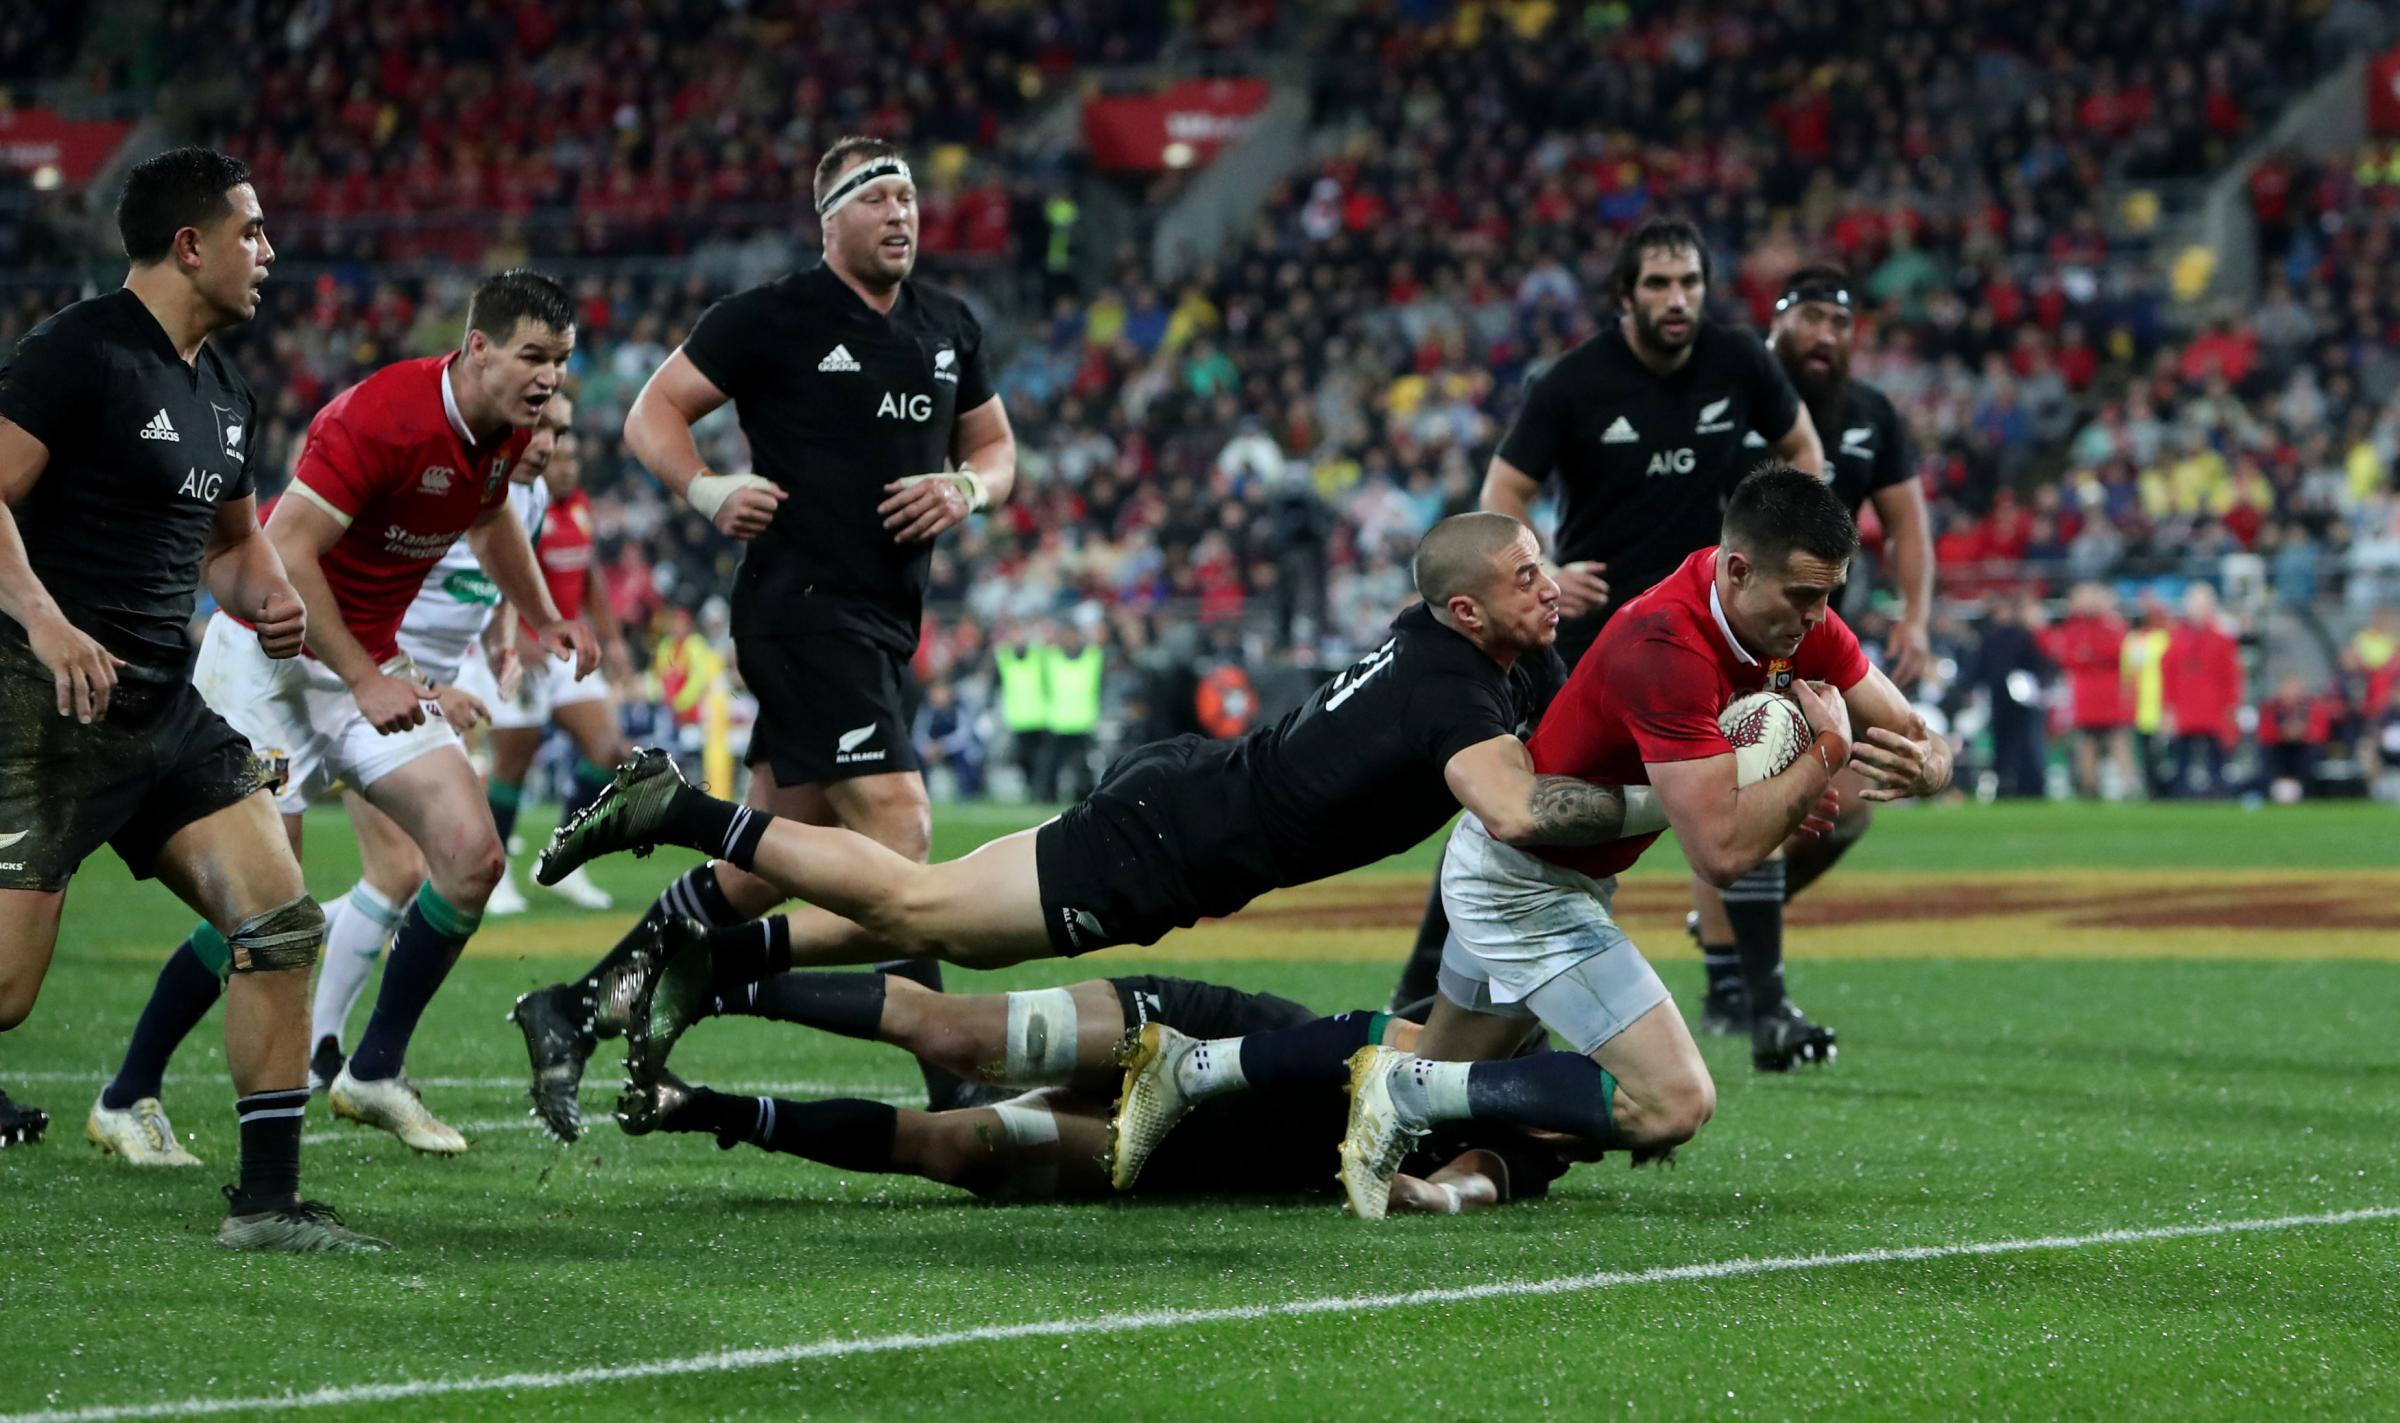 GAME CHANGER: Conor Murray goes over for the Lions' second try